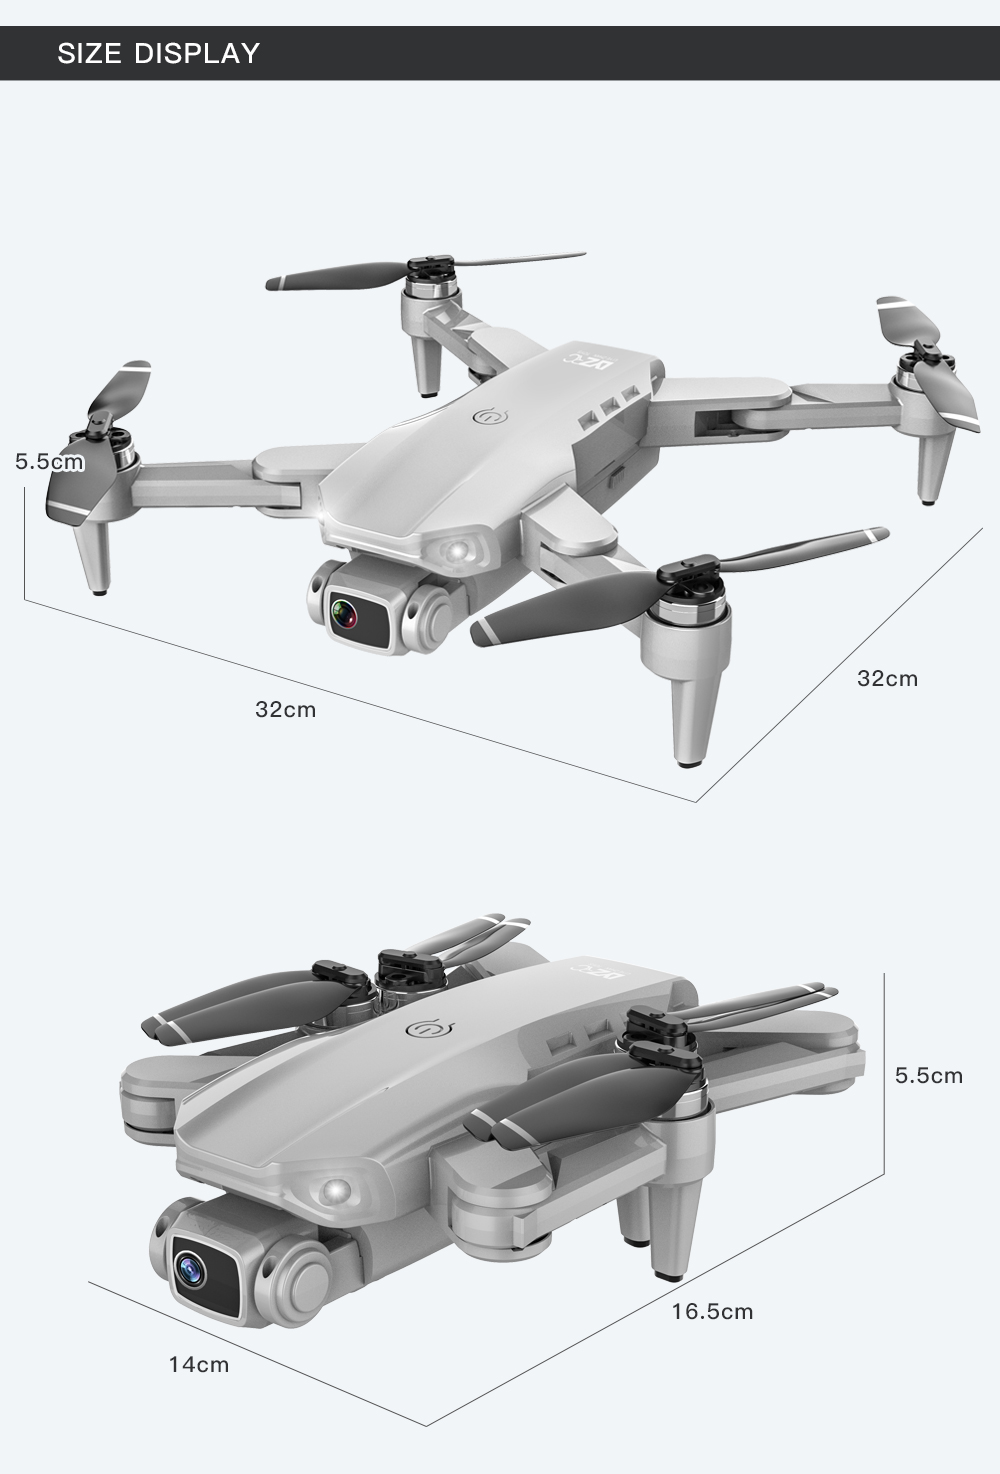 Ha10464d81009417fb0b4c0c0a5dd013fY - L900 Pro Drone 4K Professional 5G WIFI GPS Dron With HD Camera FPV 28min Flight Time Brushless Motor Quadcopter Distance 1.2km